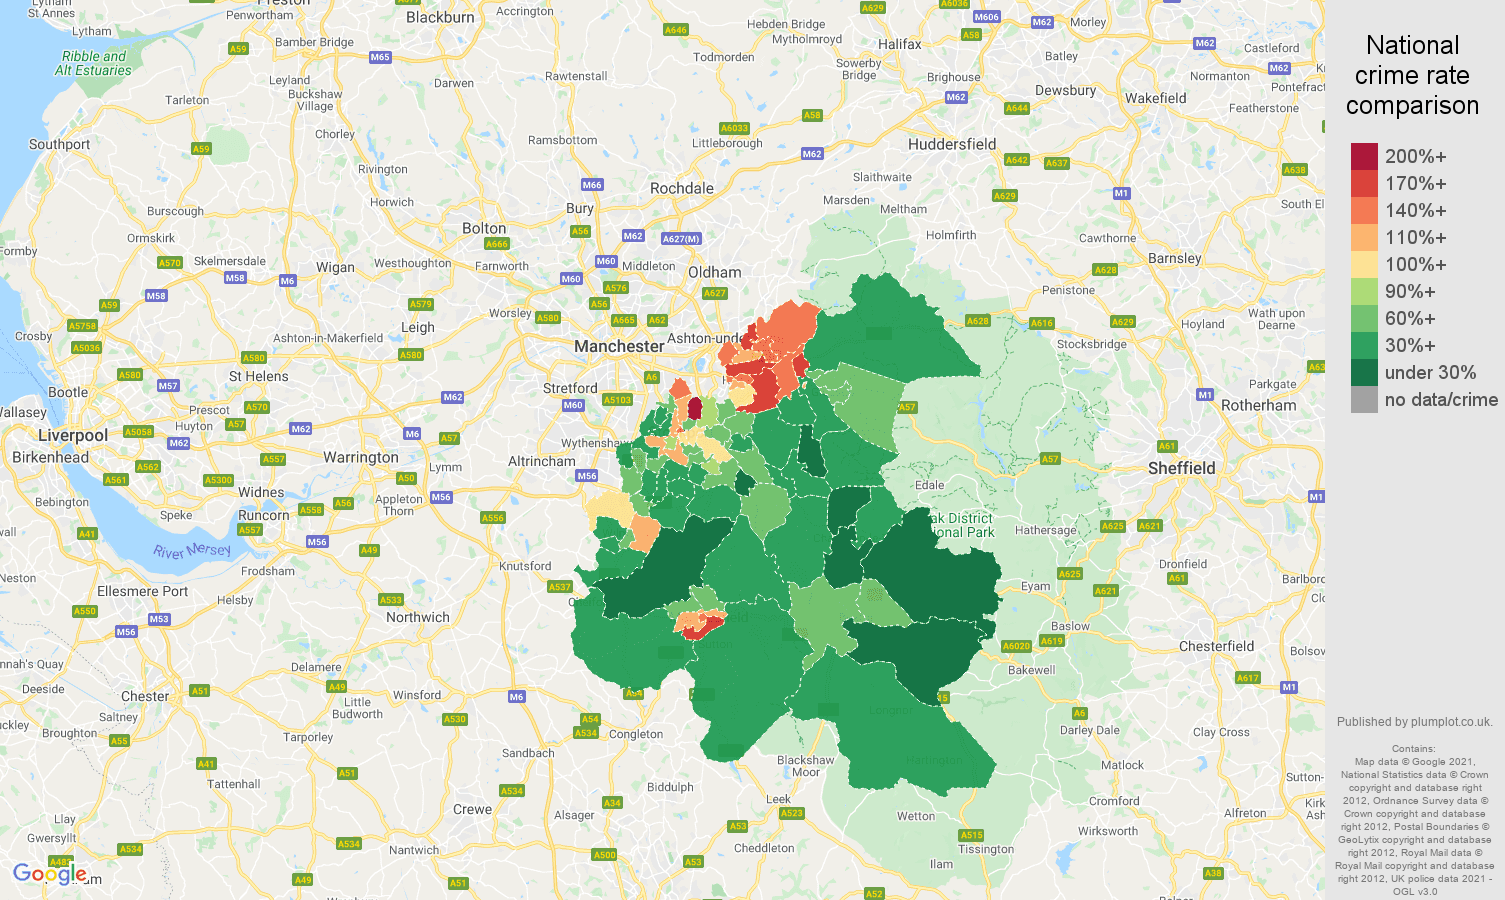 Stockport violent crime rate comparison map